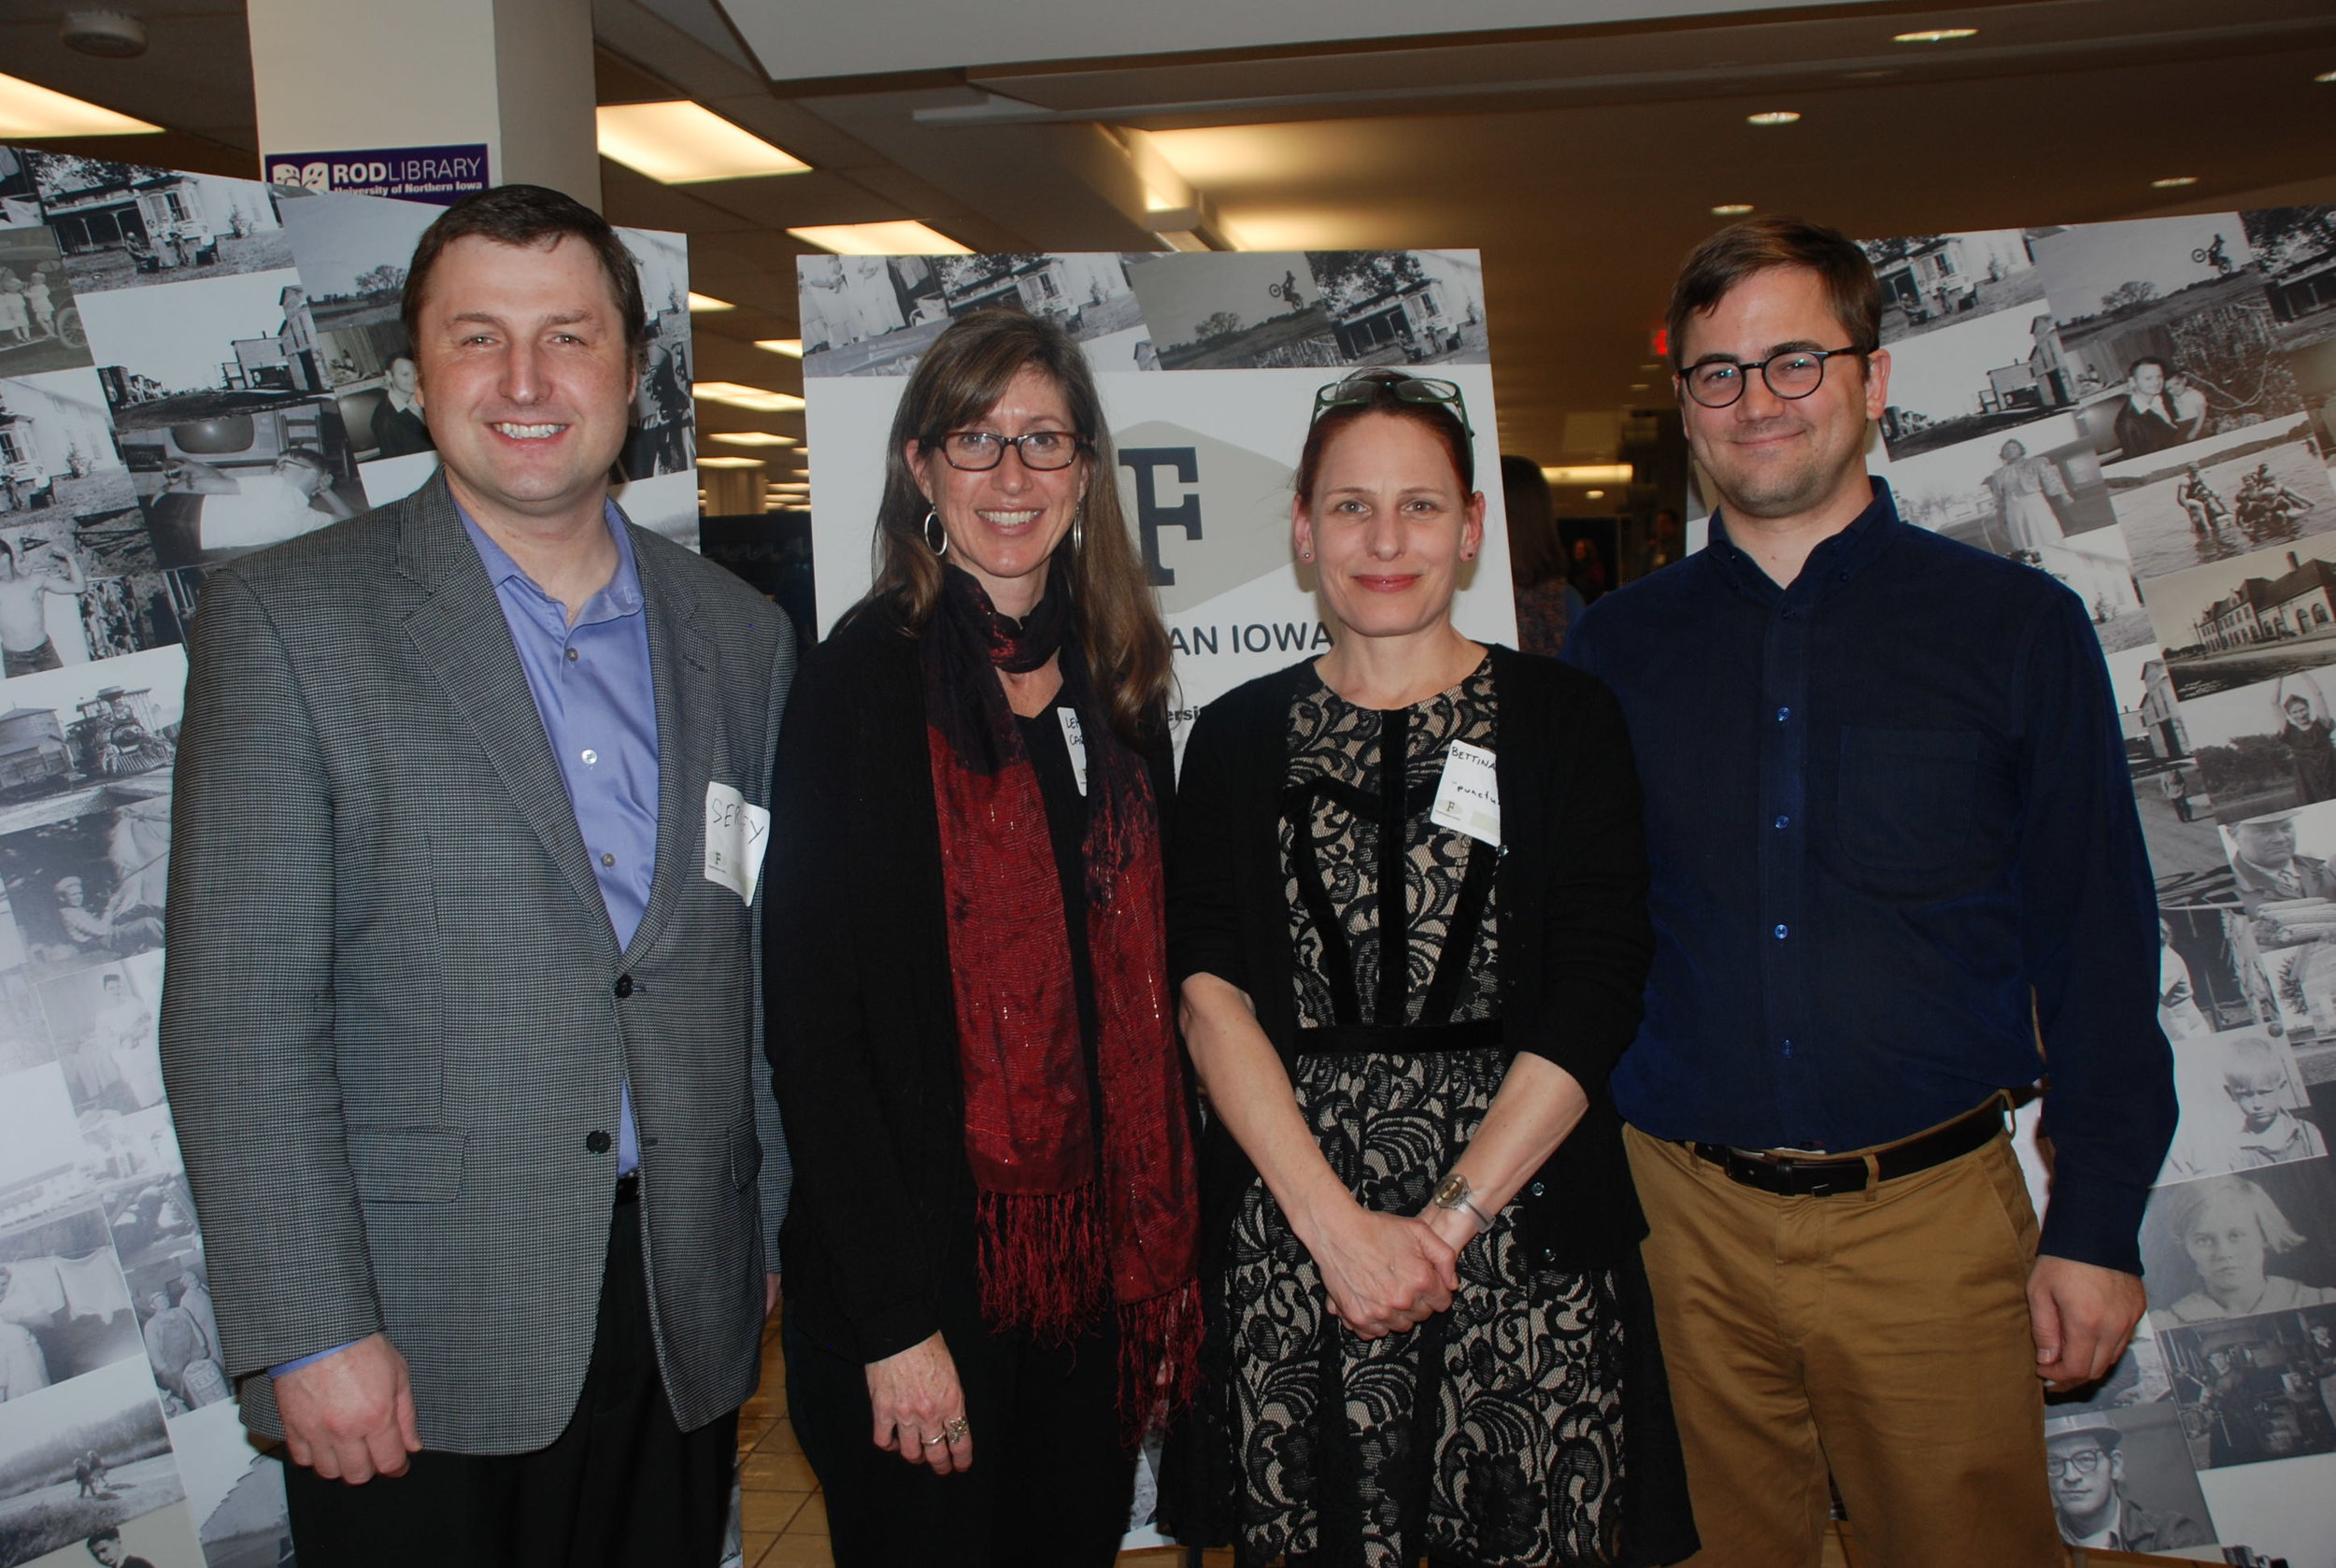 The collaborators of Fortepan Iowa -left to right: Sergey Golitsynsky, Leisl Carr Childers, Bettina Fabos, and Noah Doely. Fortepan Iowa opening. March 25, 2015.